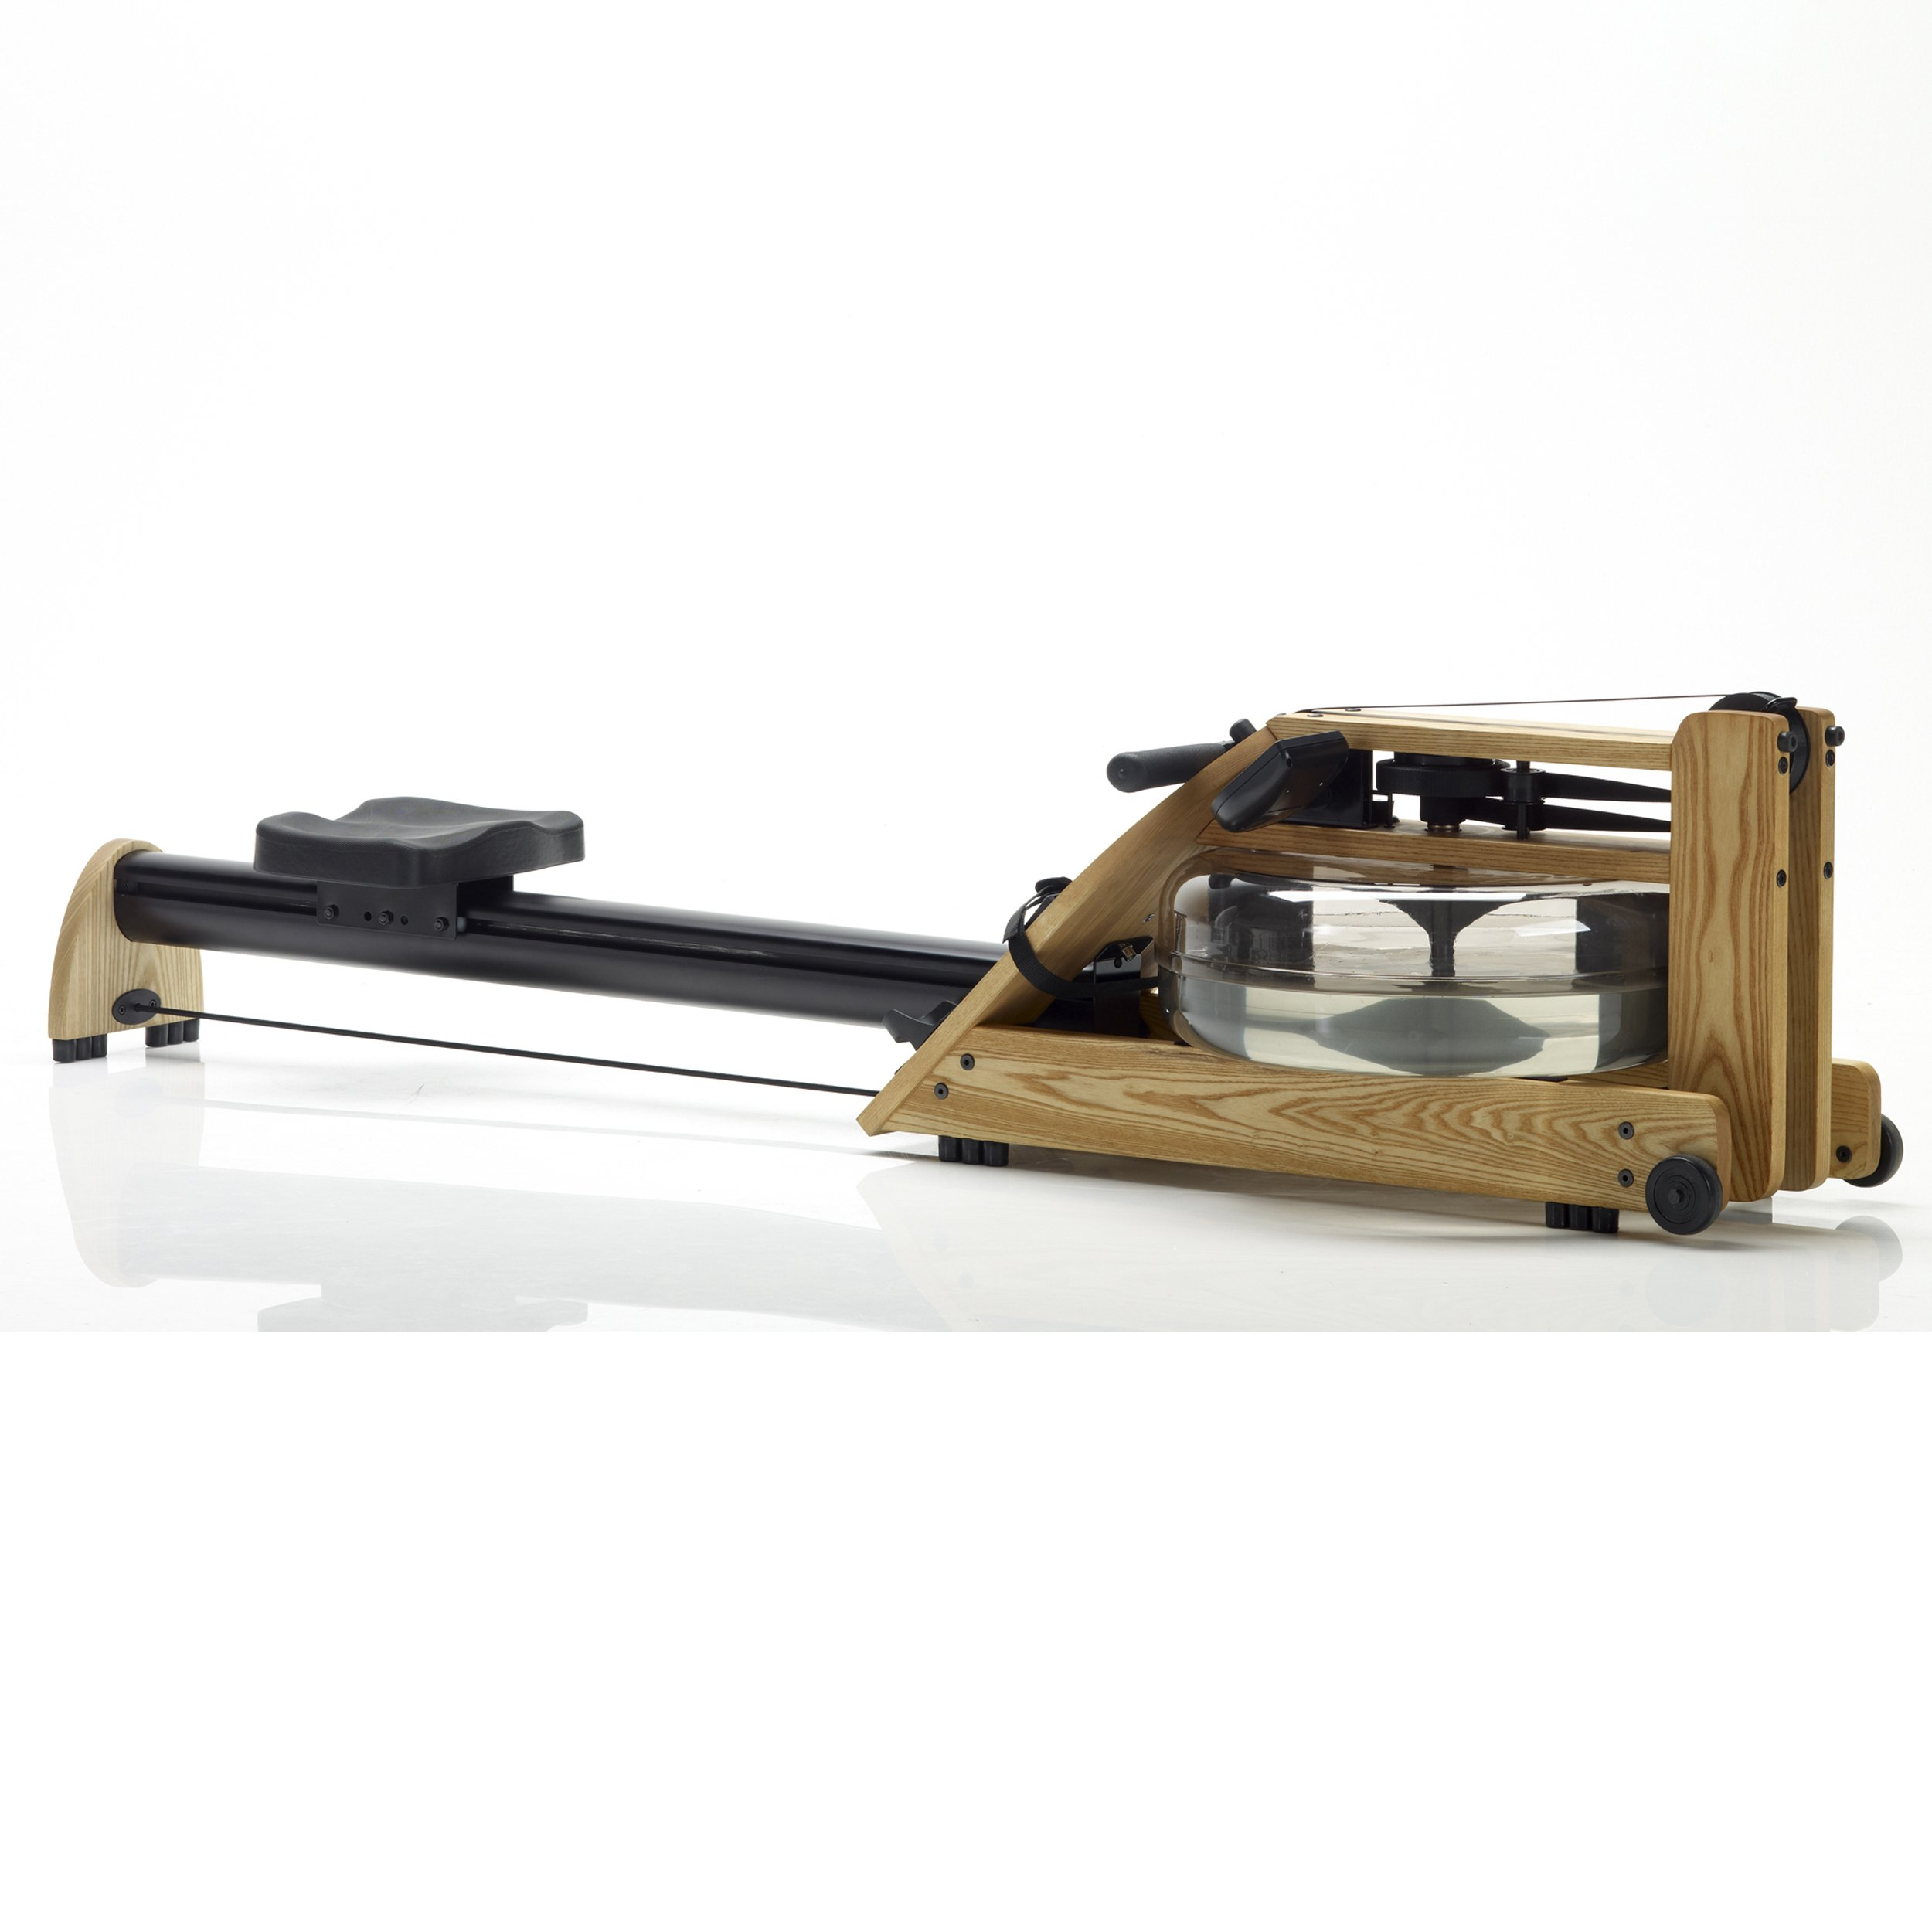 Water Rower Exercise Machine by WaterRower - A1 S4 Natural with Self-Regulating Resistance